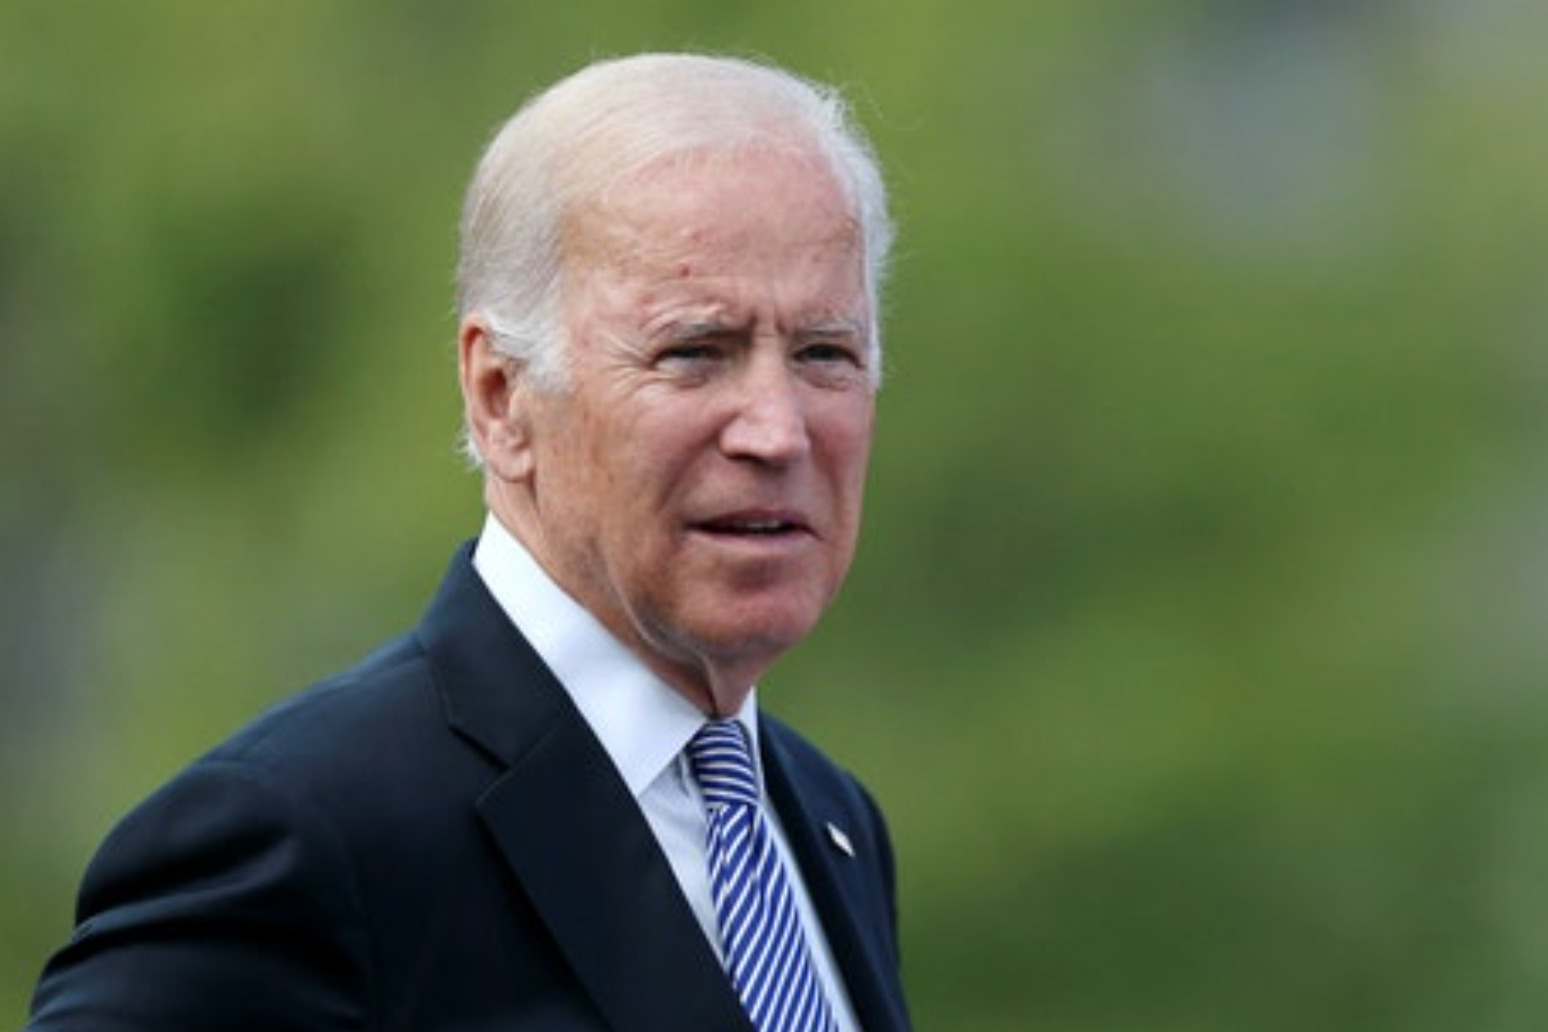 Republican Party may wait for January to say Biden won